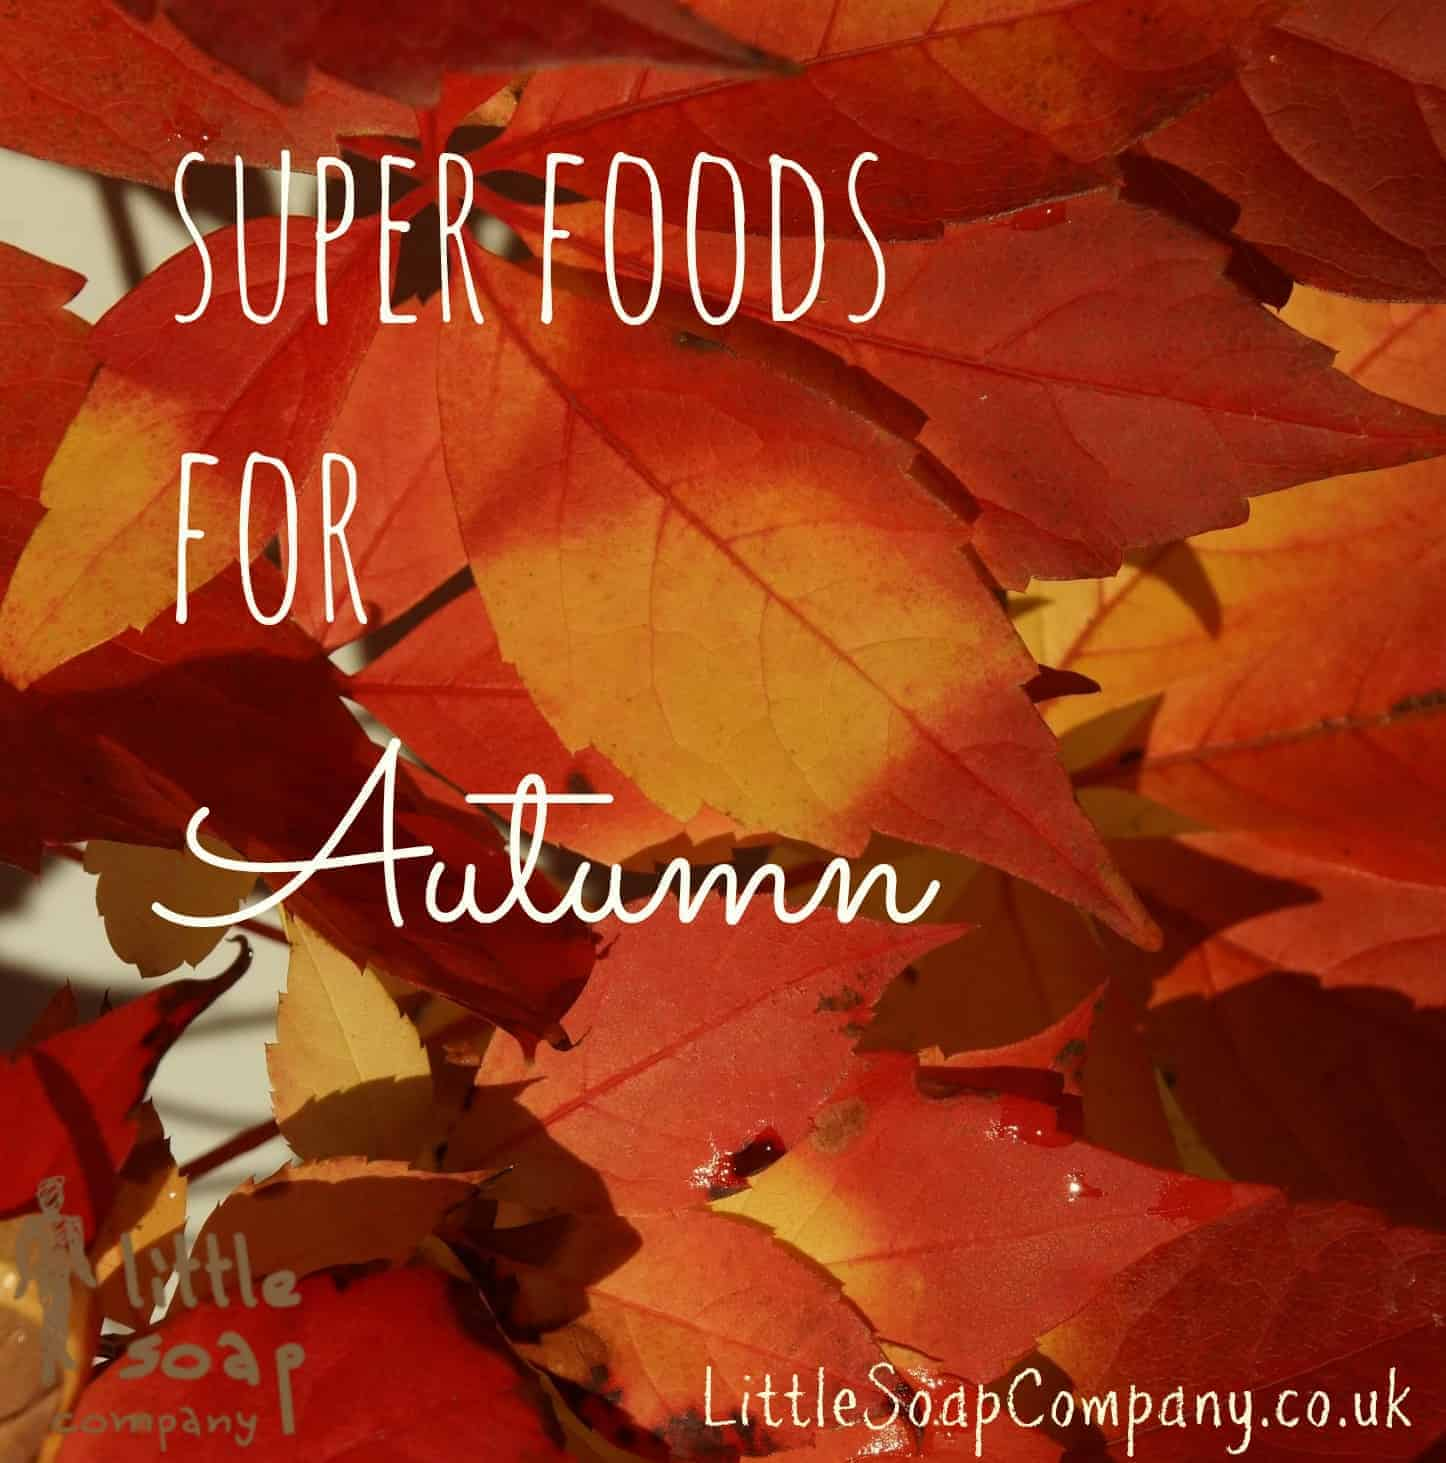 Super foods for autumn~ LittleSoapCompany.co.uk